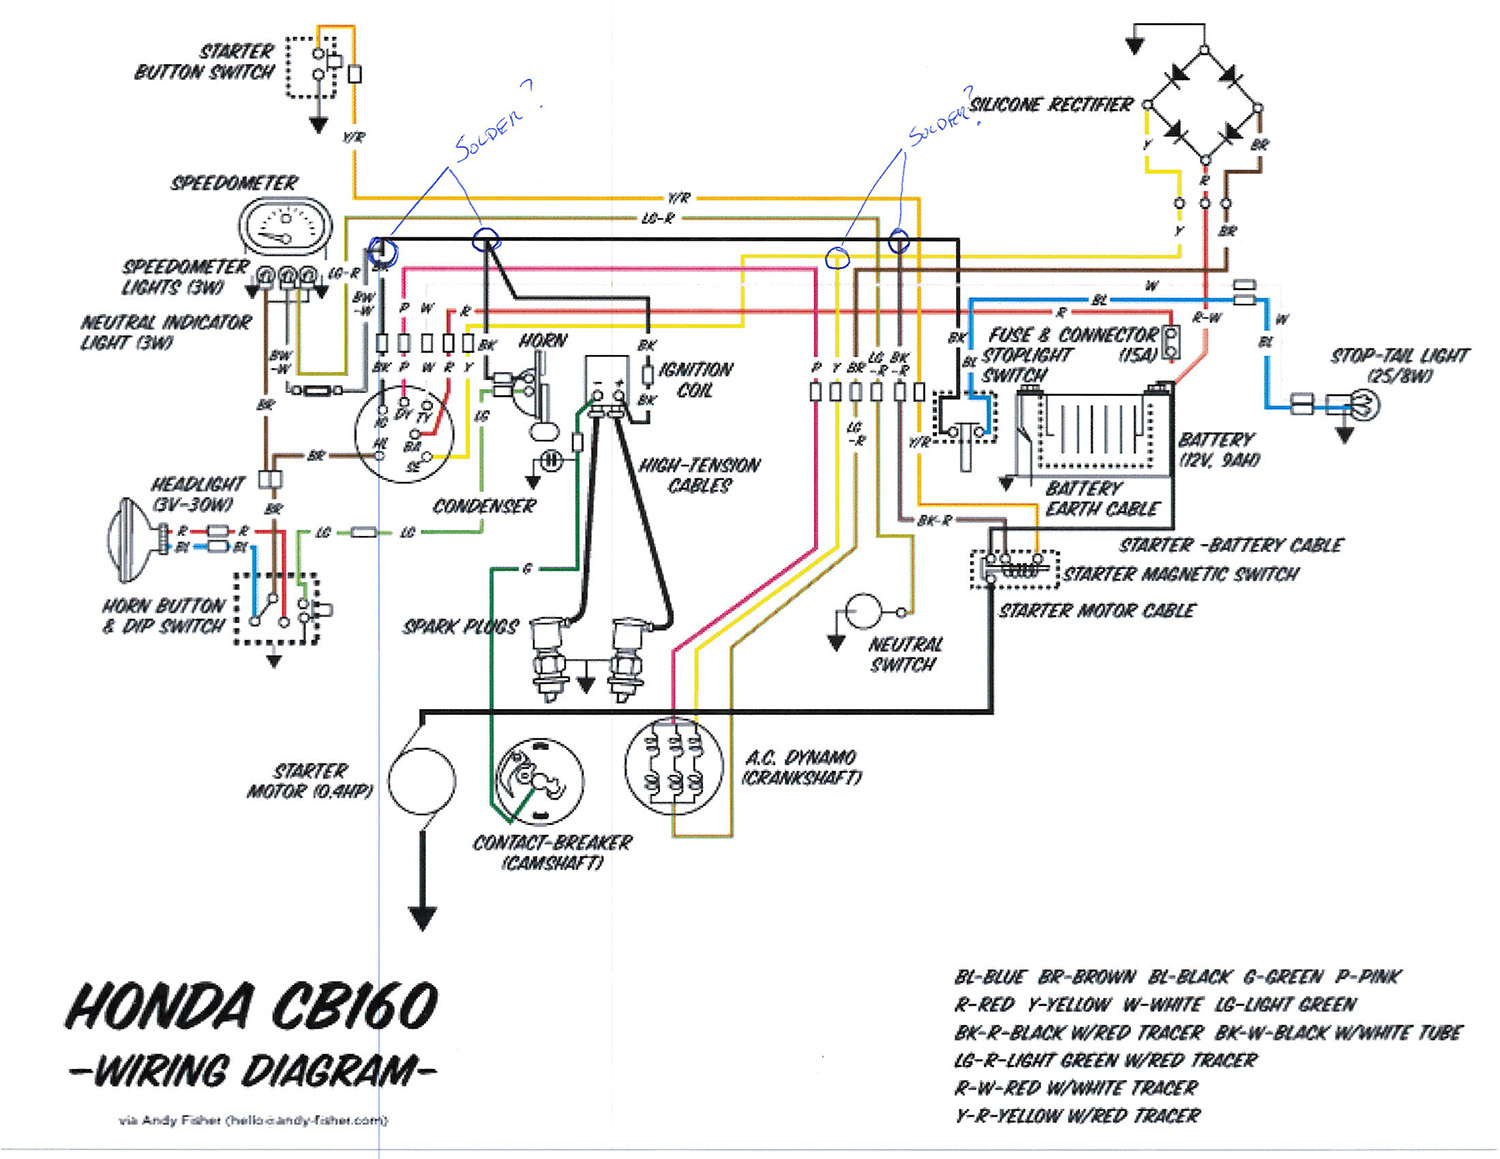 [DIAGRAM_3US]  CB160 electrical woes.... | Honda Twins | Honda Cb160 Wiring Diagram |  | Honda Twins